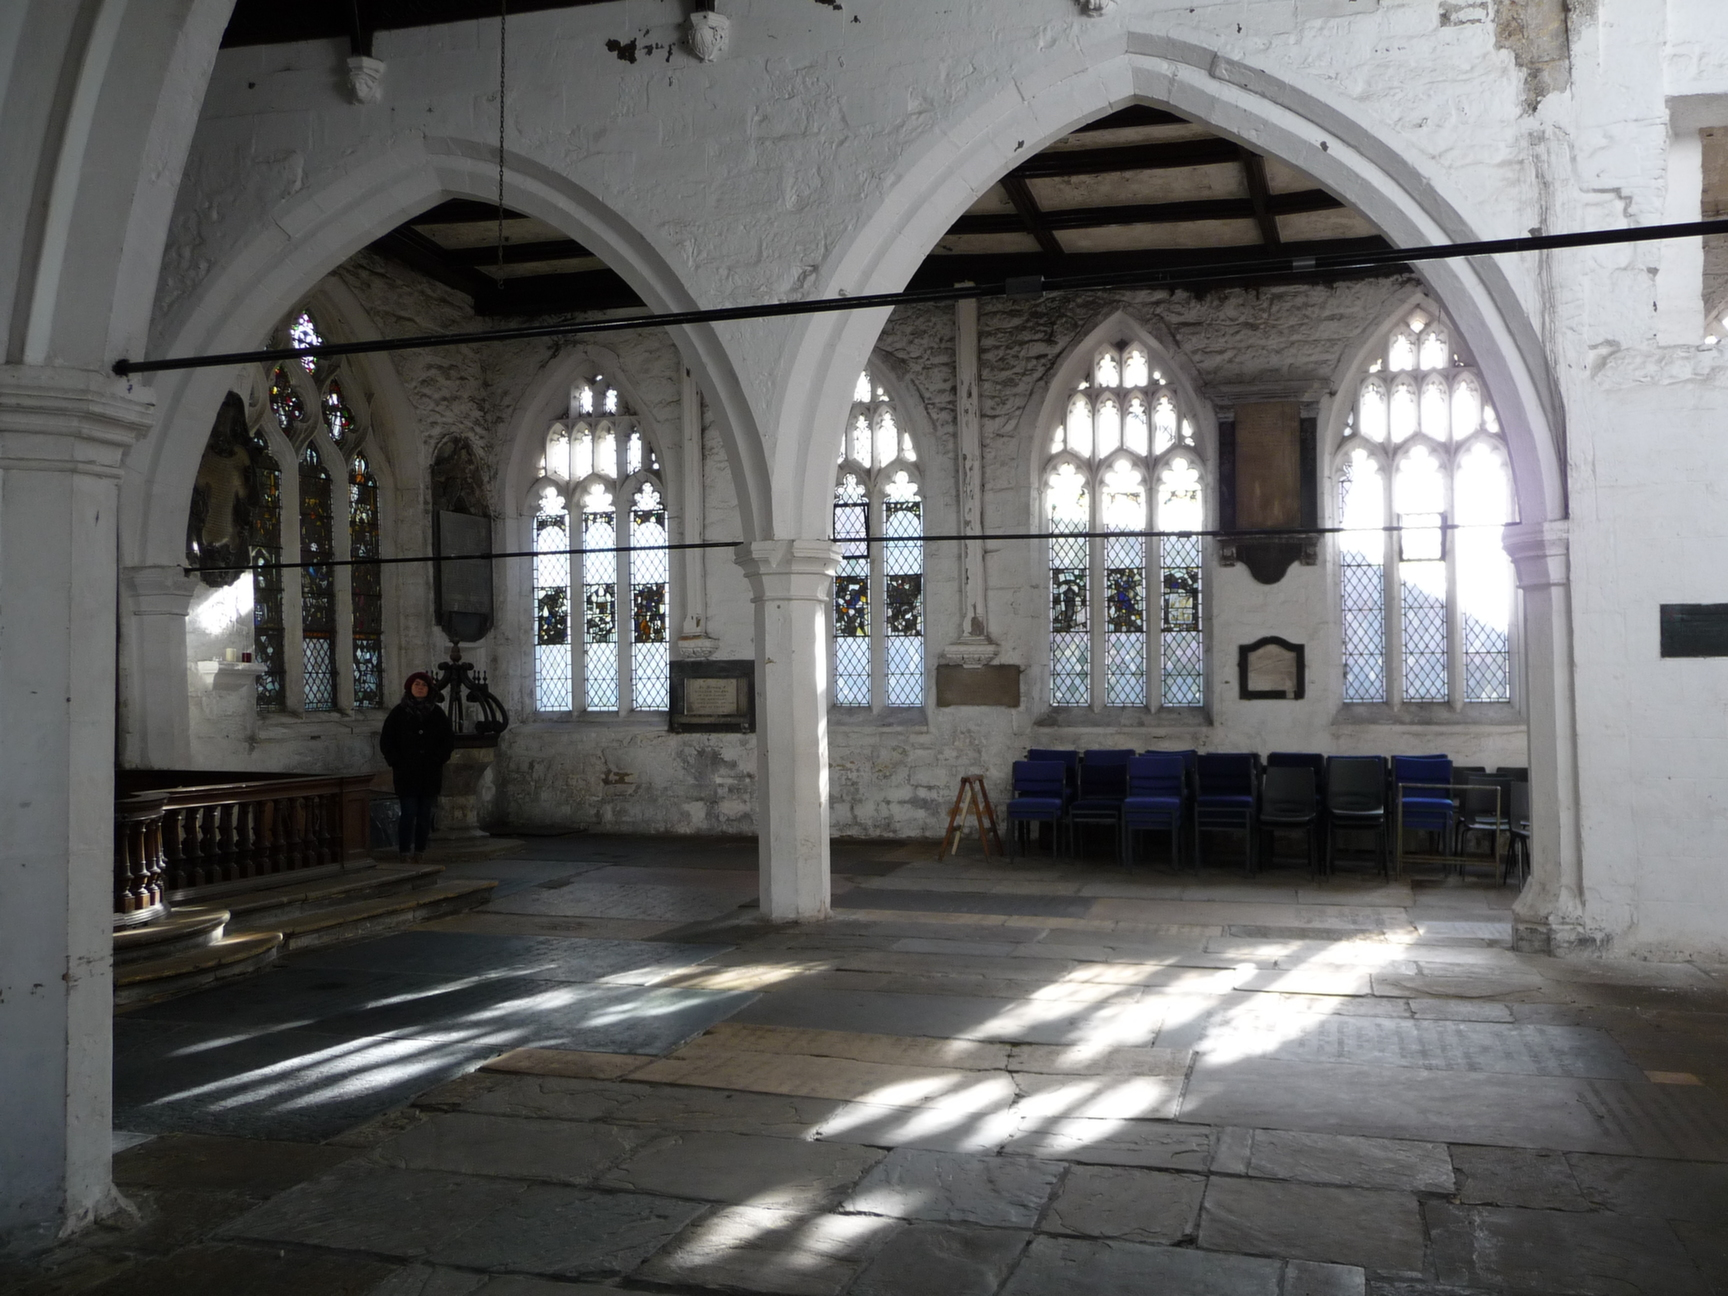 Interior looking south